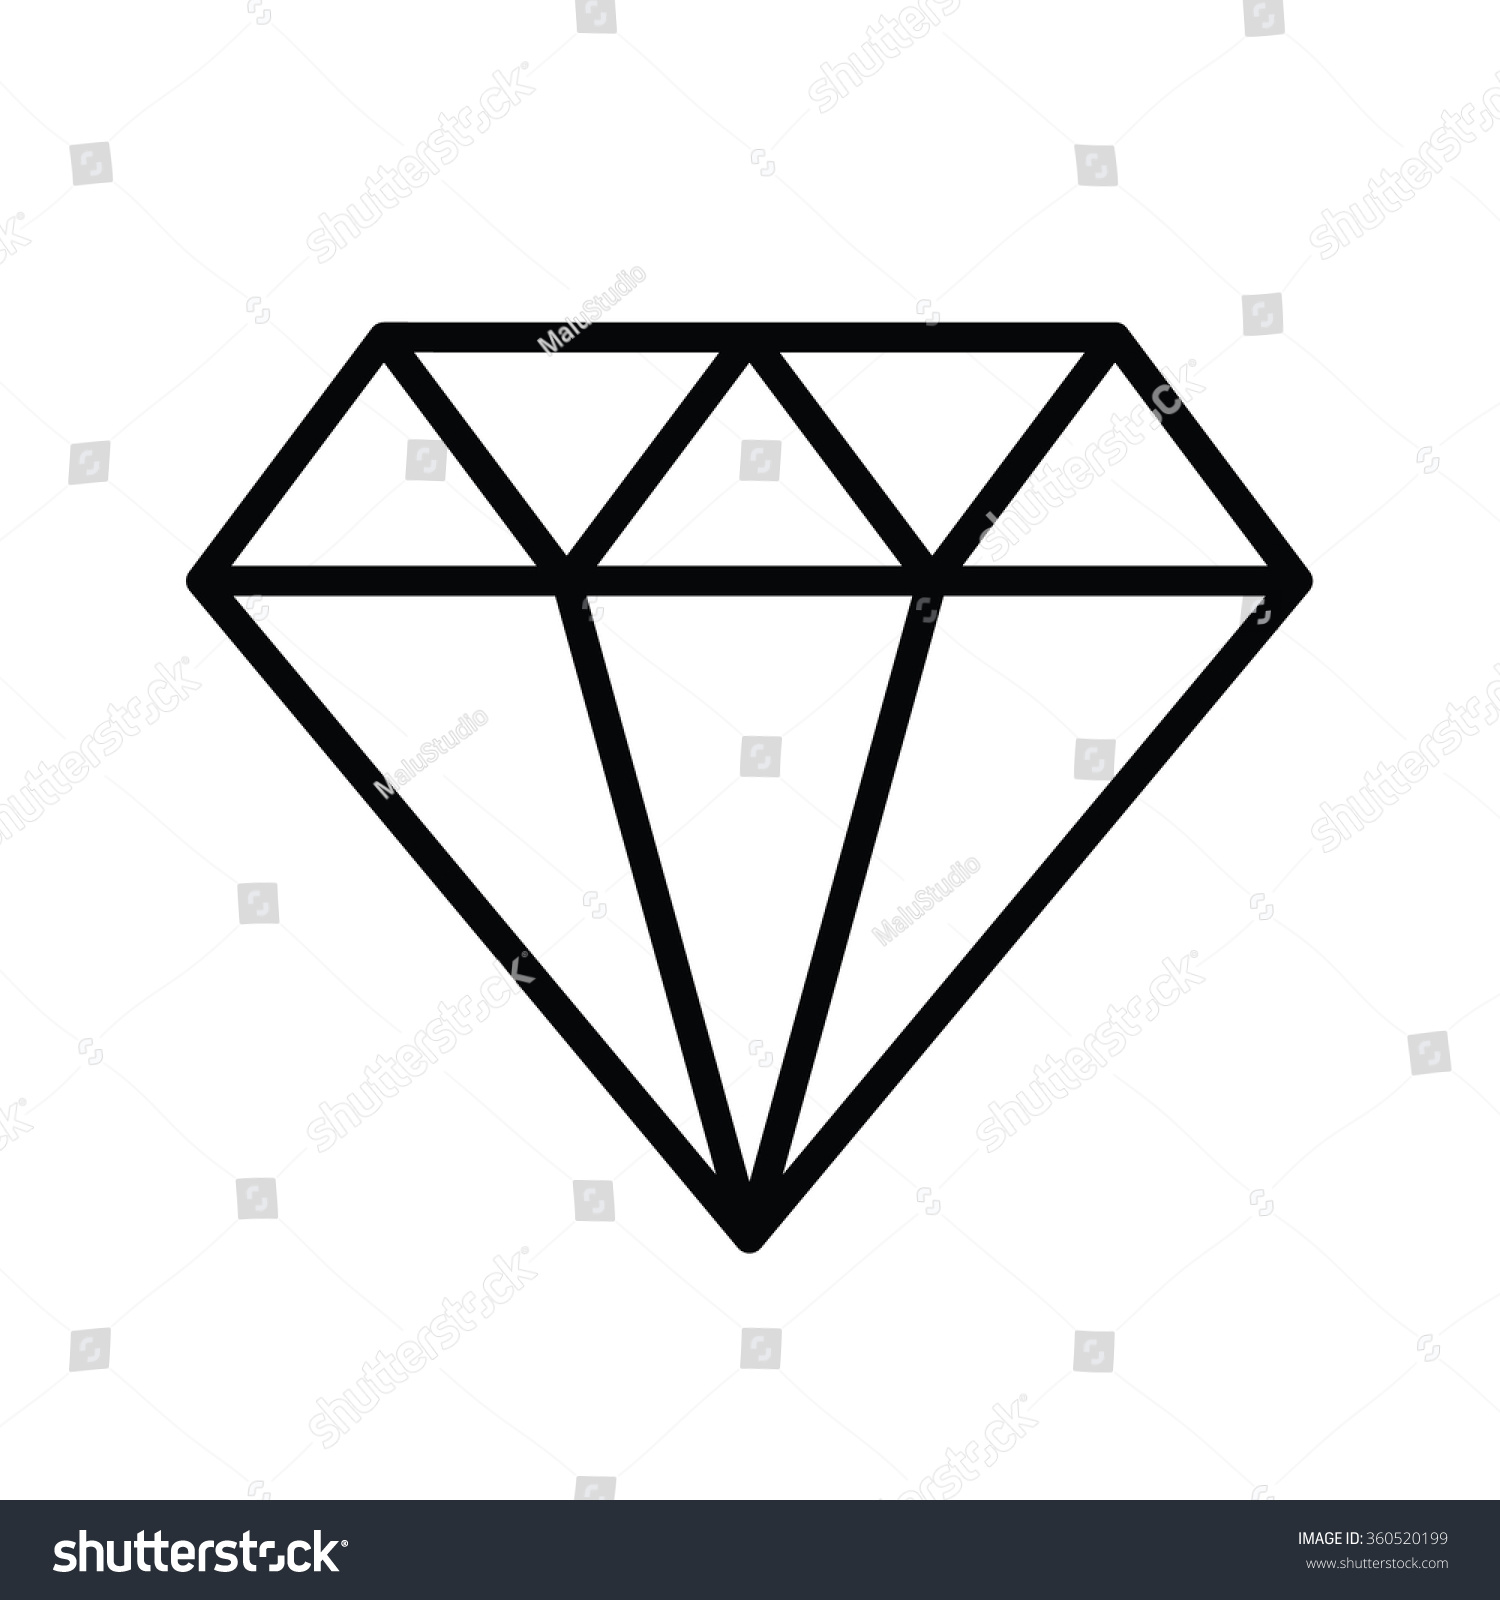 Diamond Outline Icon Vector Illustration Stock Vector ...